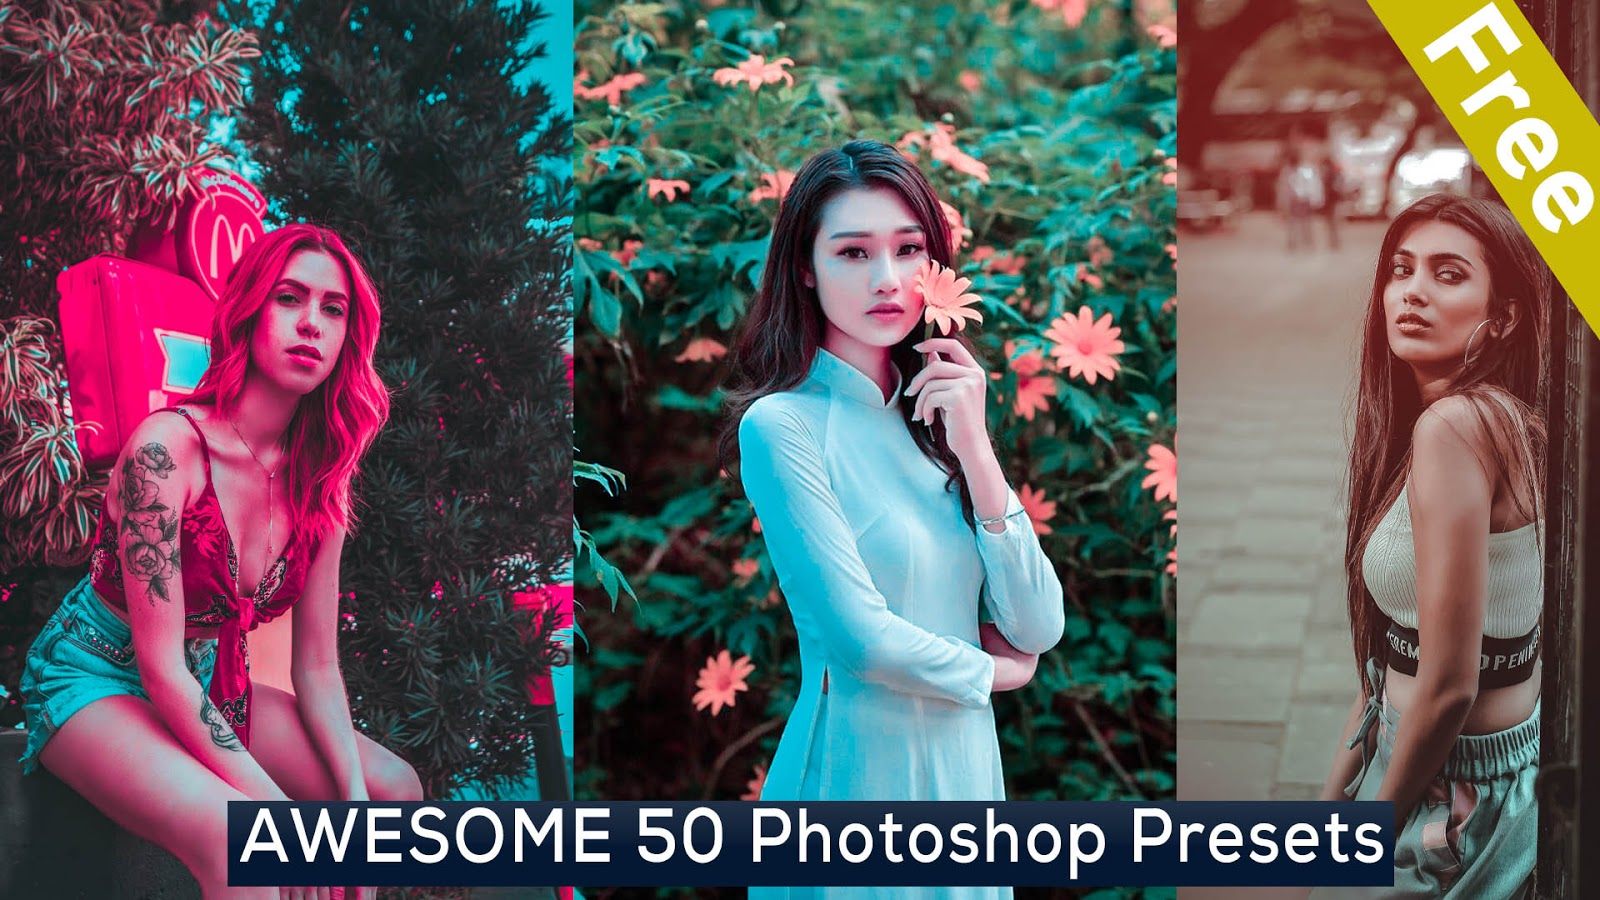 AWESOME 50 Photoshop Presets Free Download | Camera Raw Presets Free Download